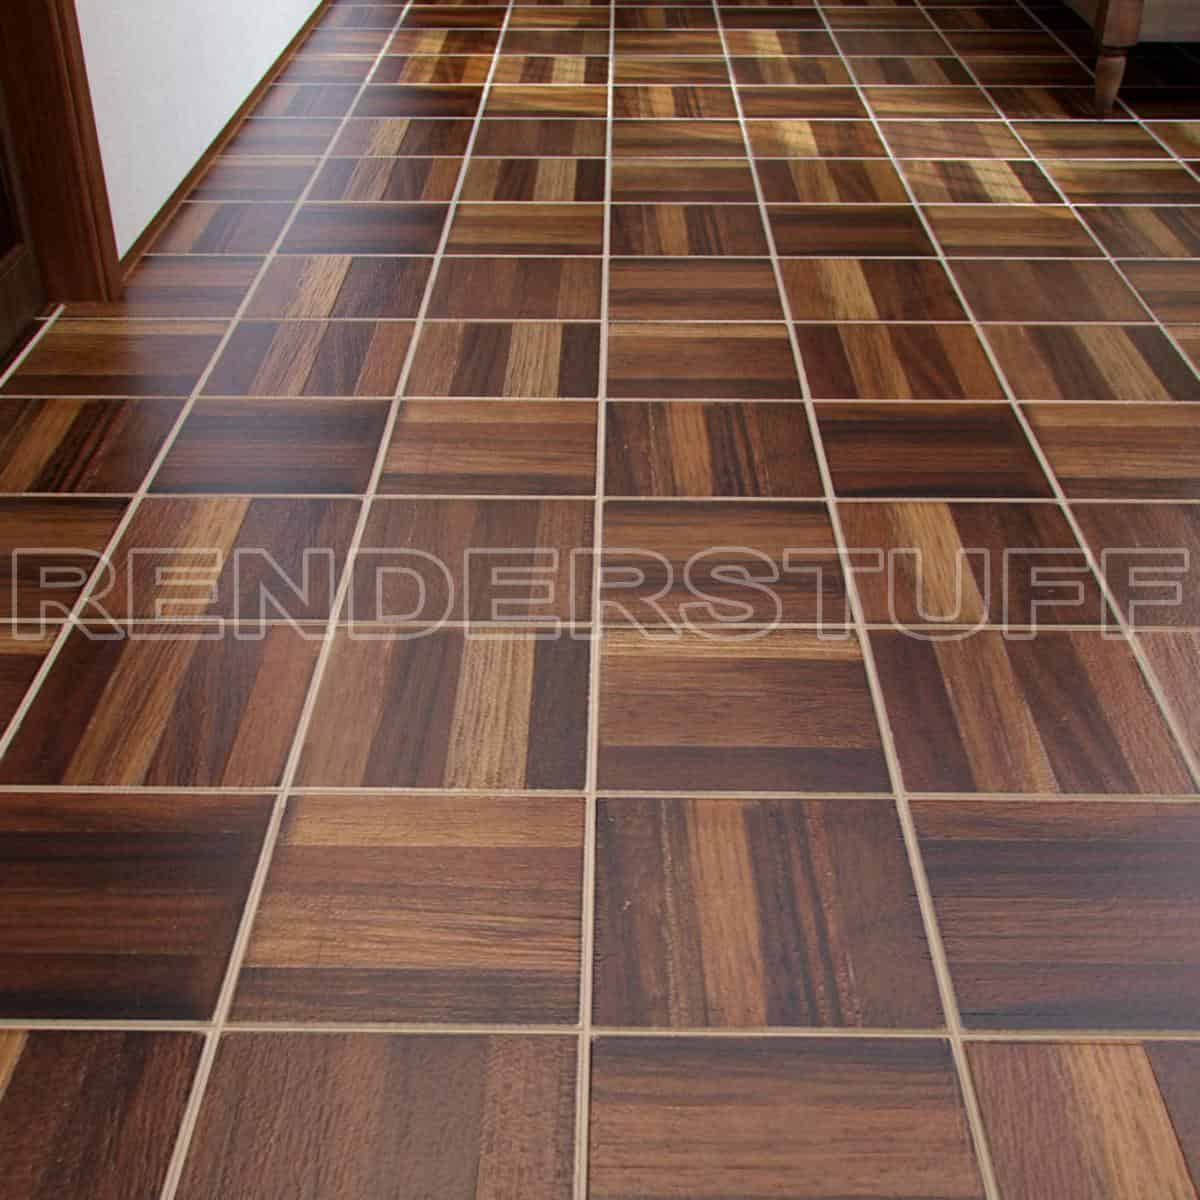 Wooden floor tiles image contemporary tile design ideas from wooden floor tiles image dailygadgetfo Image collections